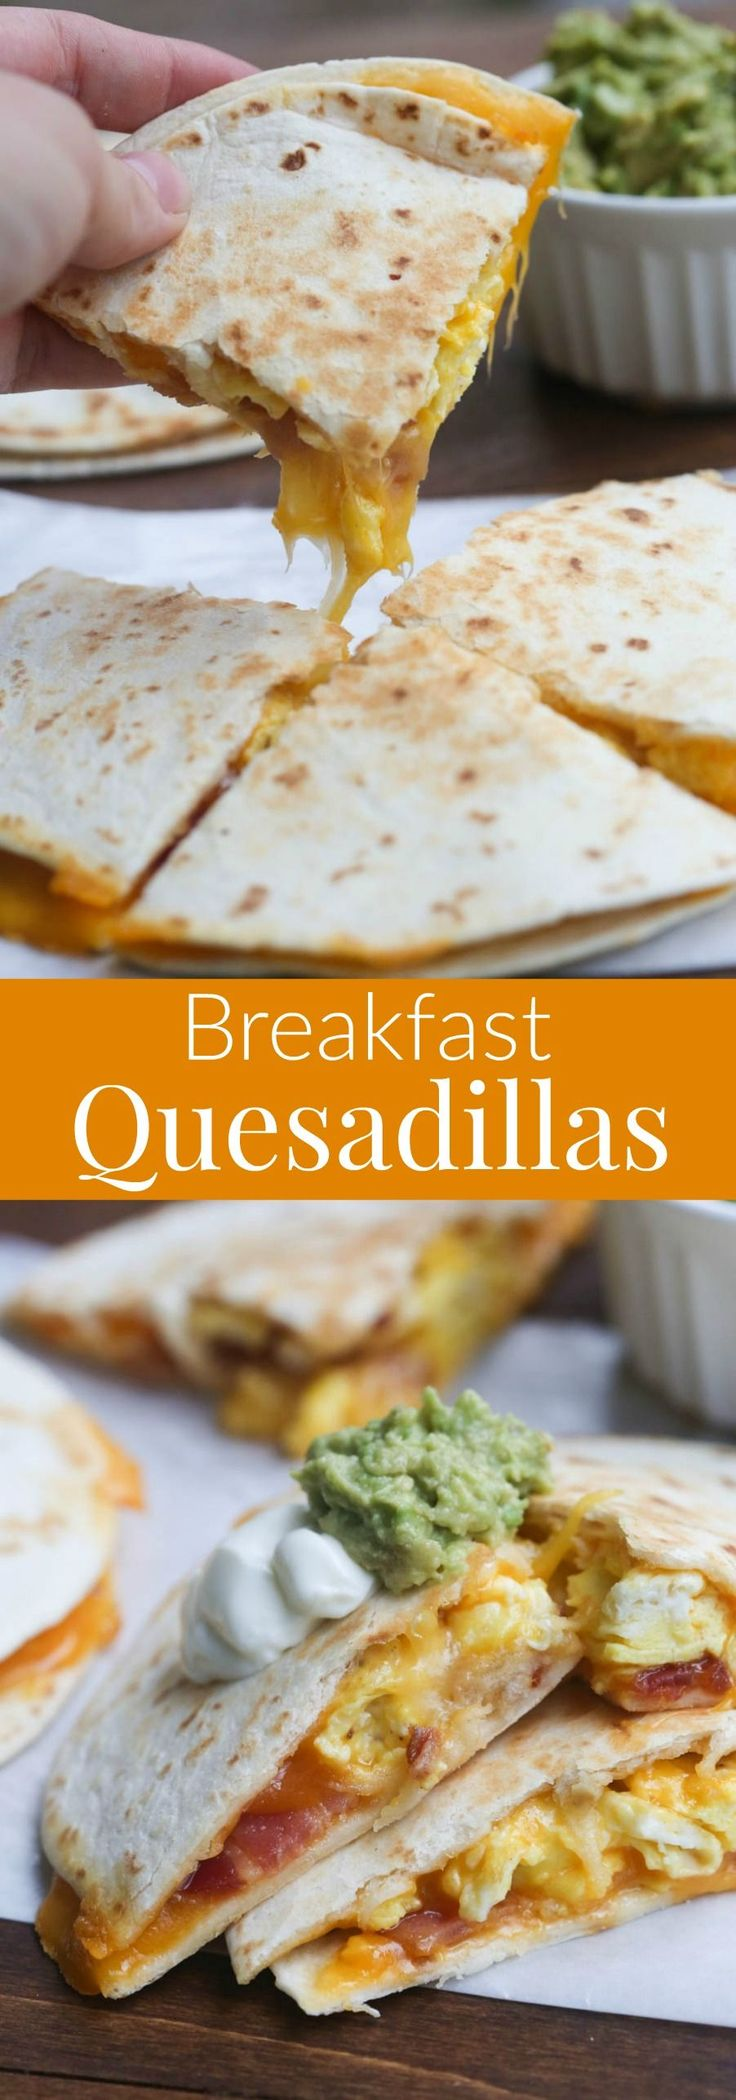 Breakfast Quesadillas A major upgrade to the alrea…